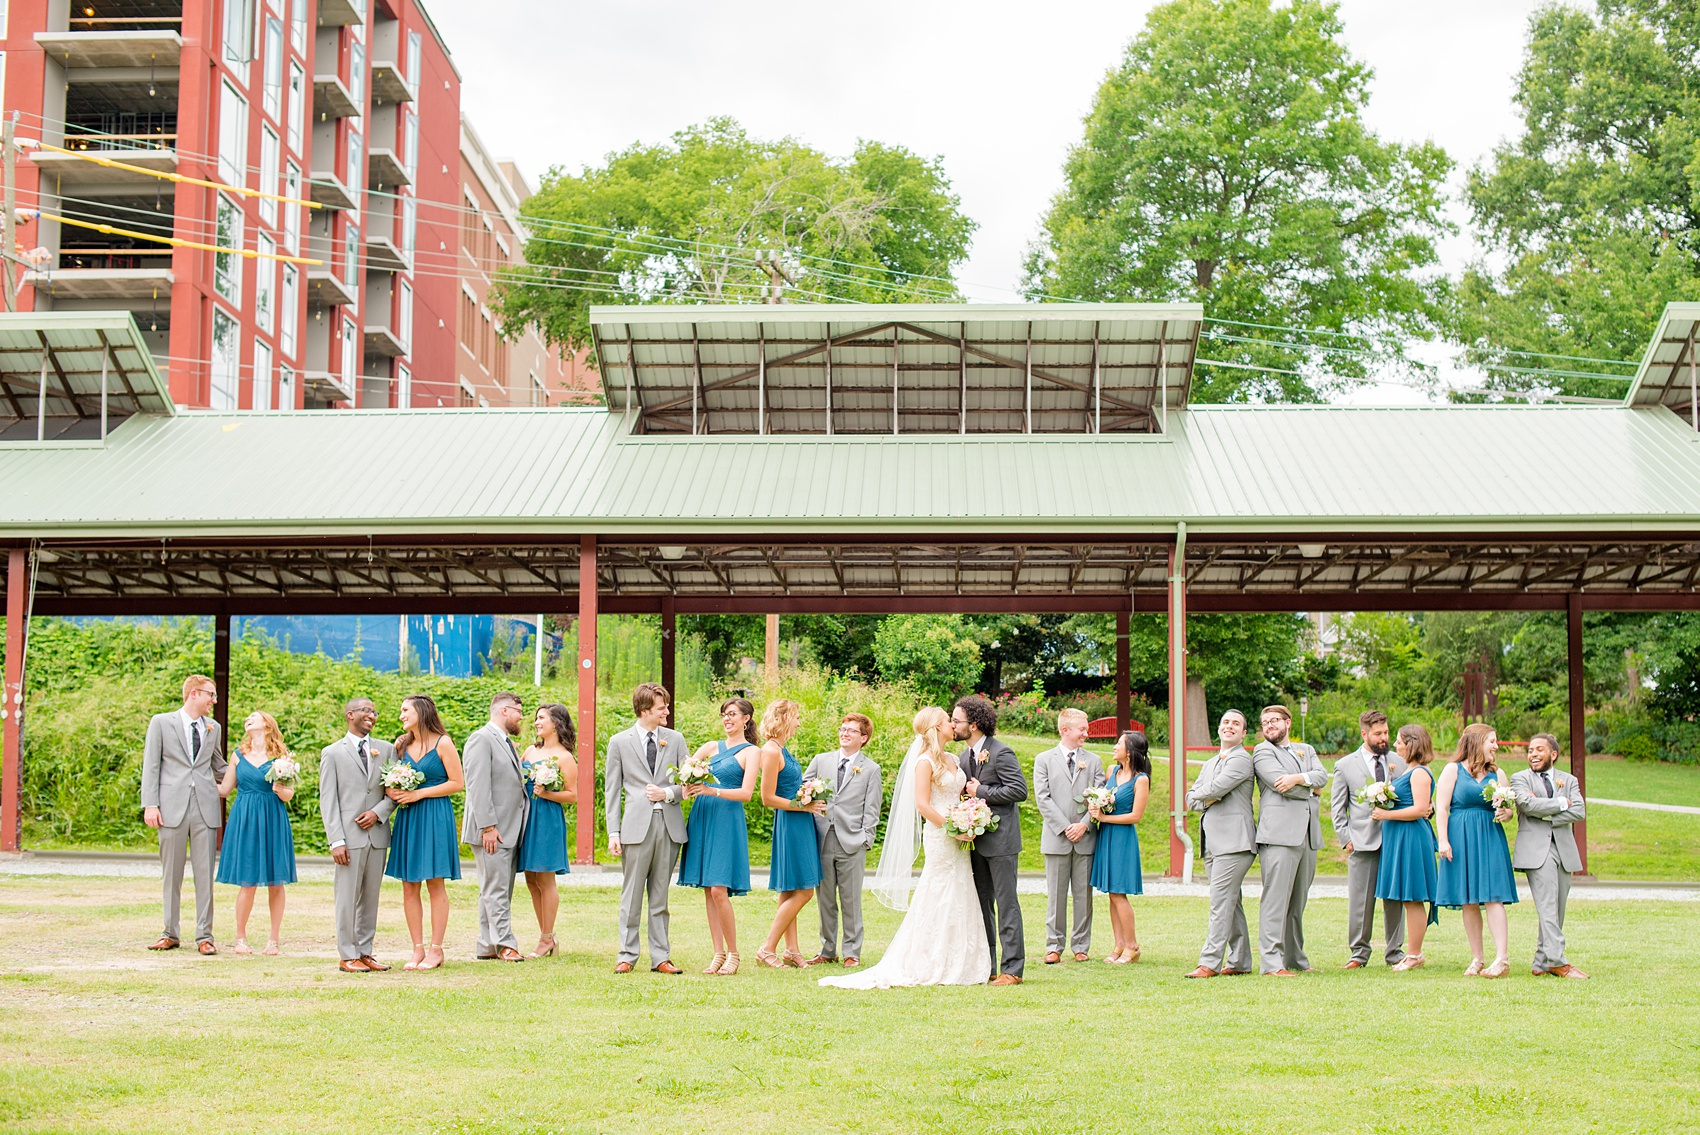 Mikkel Paige Photography photos from a wedding in Durham, North Carolina. Picture of the large wedding party - with the bridesmaids in teal and groomsmen in grey - in a Vogue-like photo in the park.